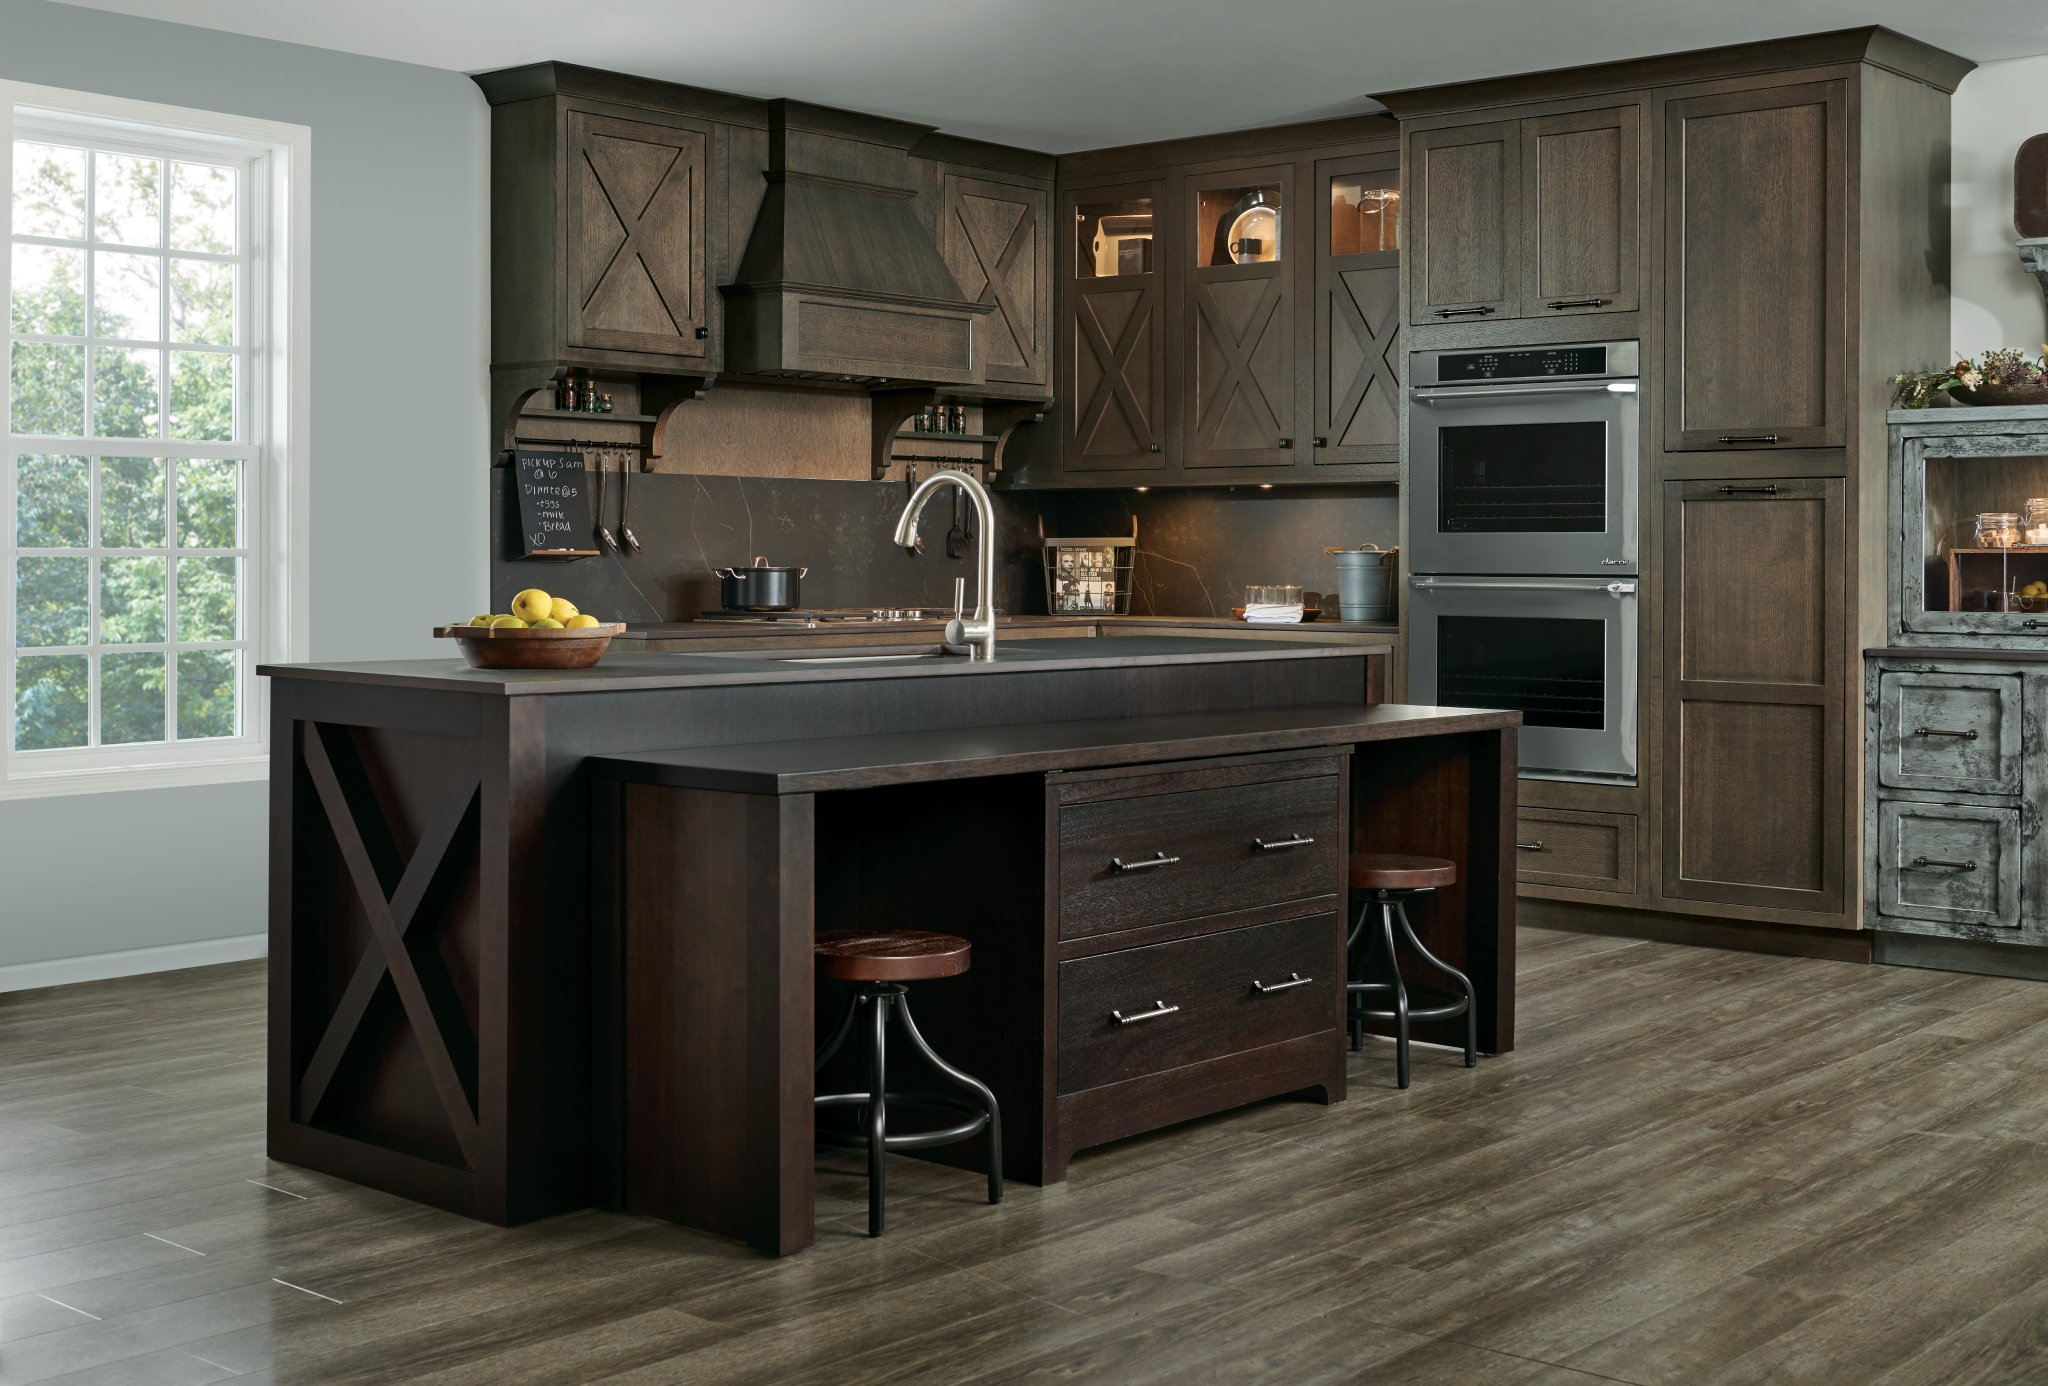 Top 10 Characteristics Of High Quality Kitchen Cabinets Premier Kitchens And Cabinets